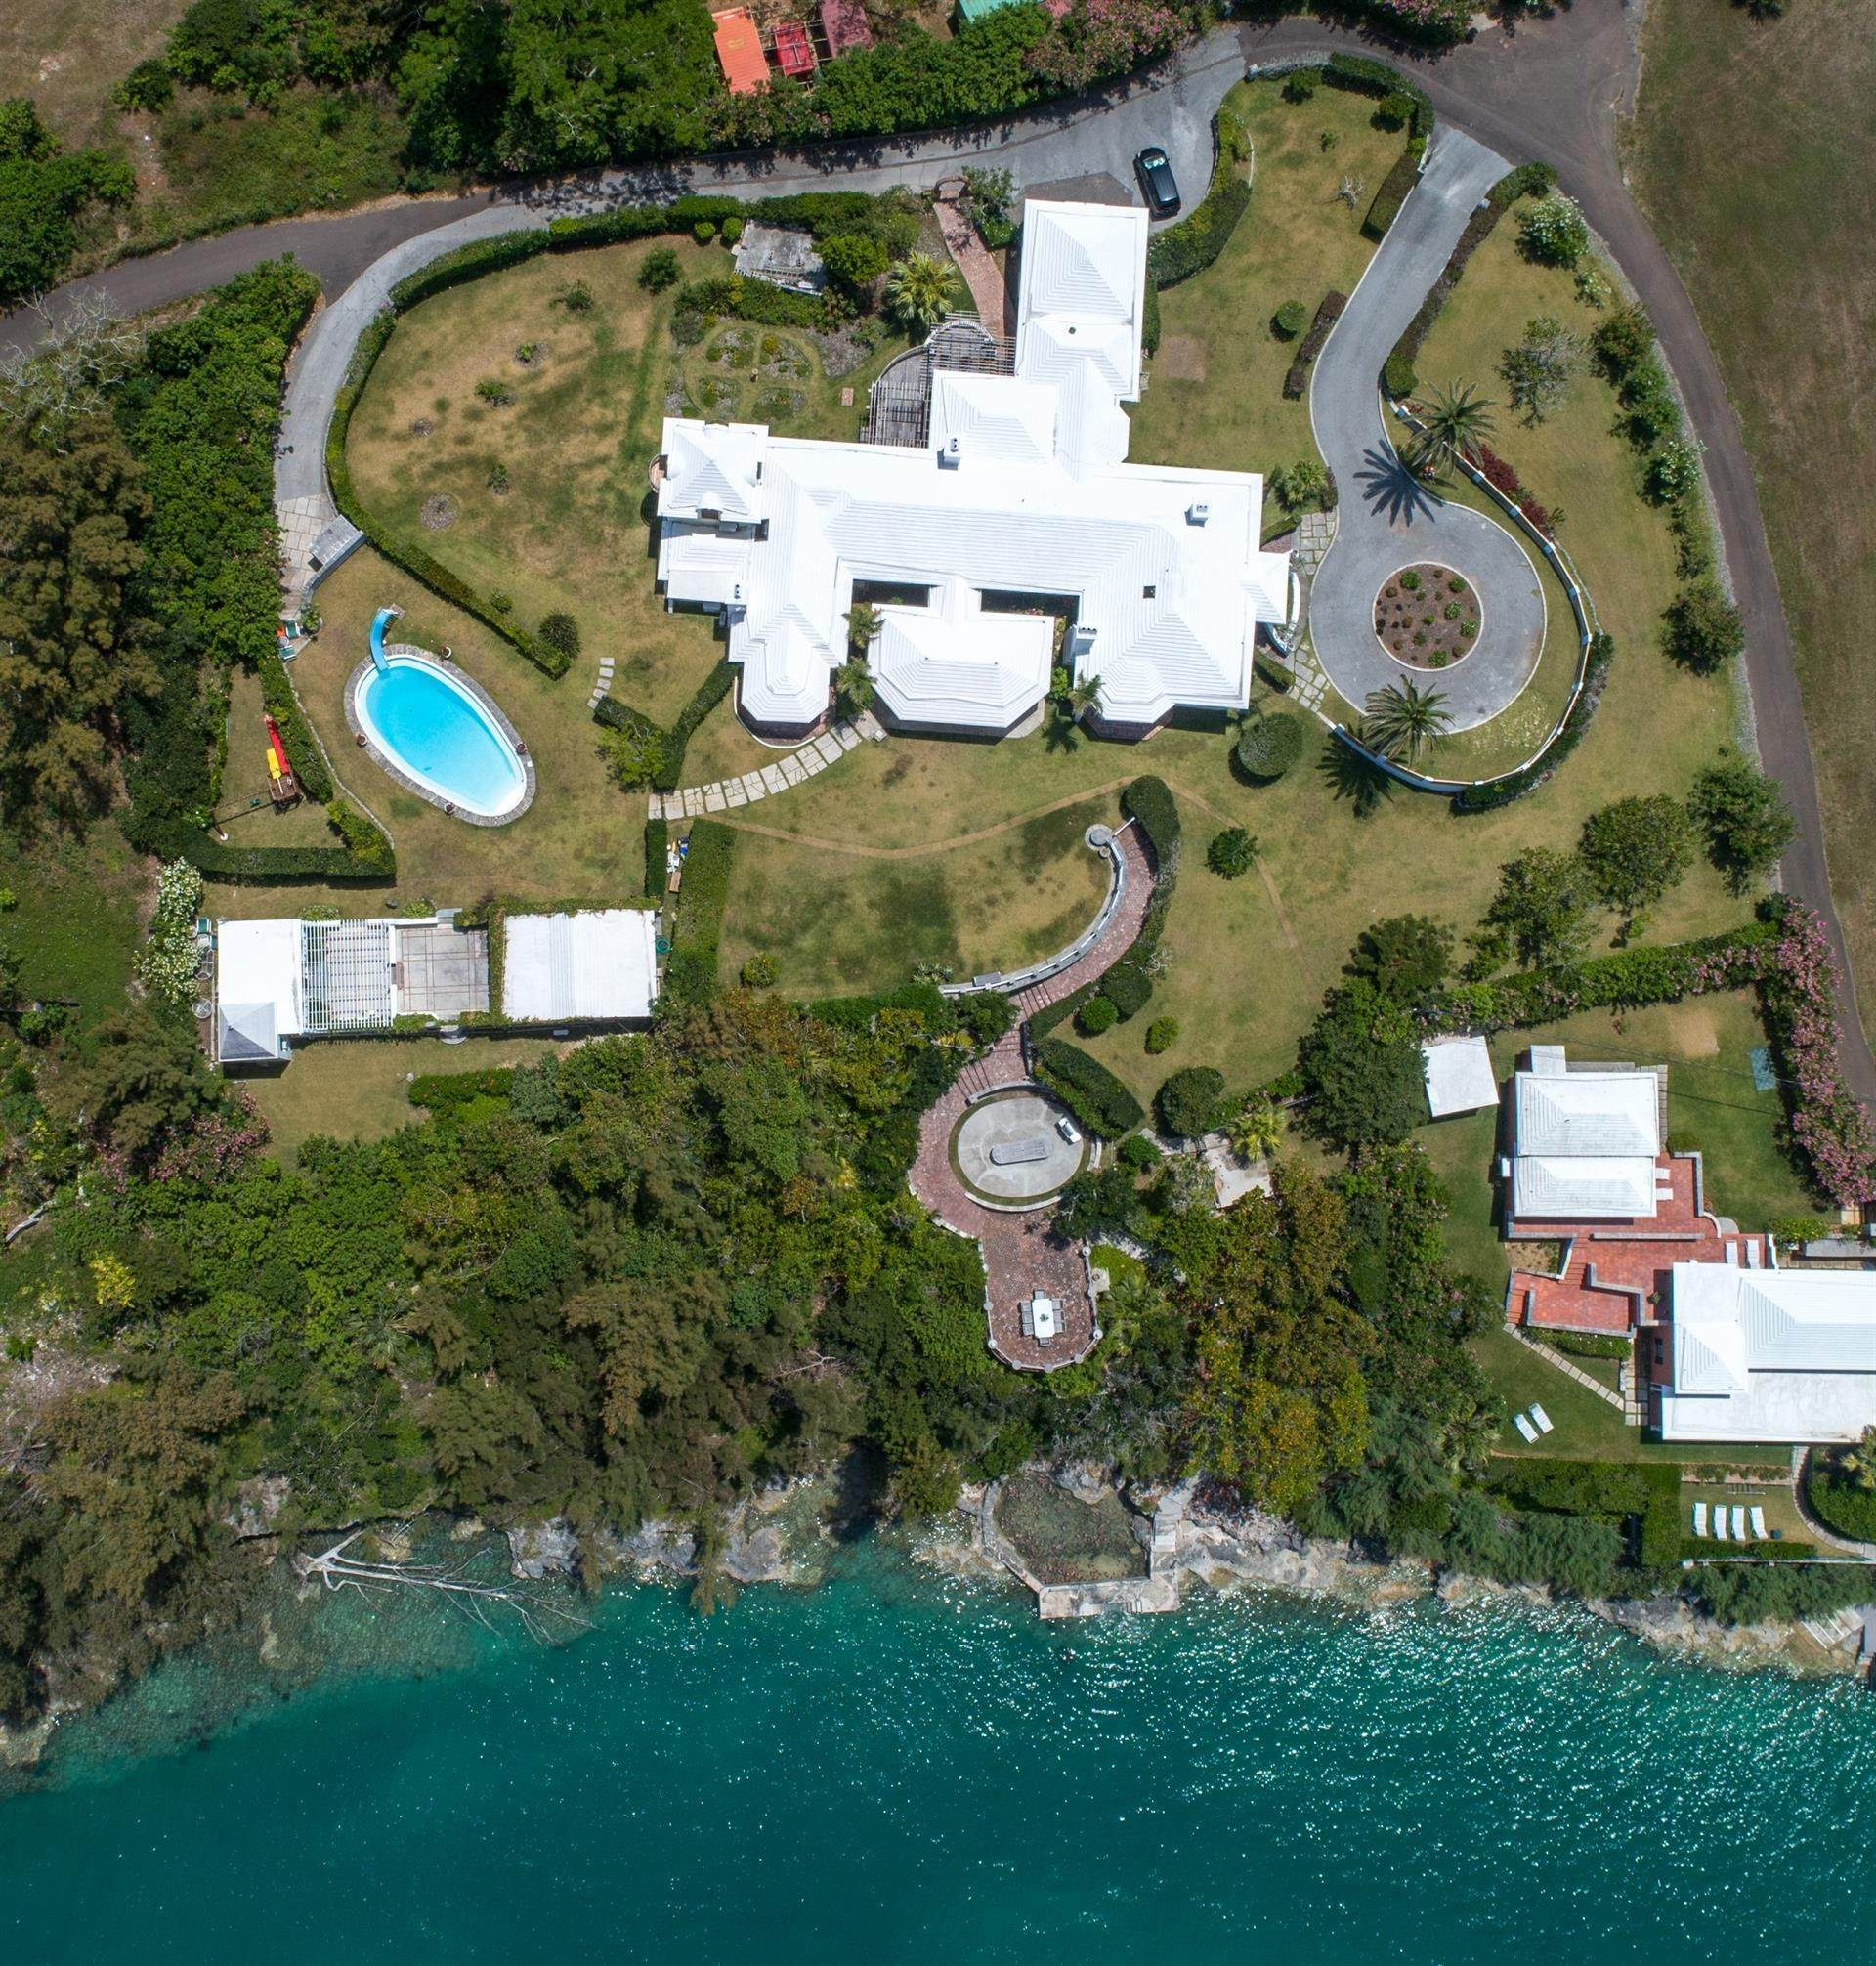 38. Vid Vattnet för Försäljning vid Heron Hill On The Great Sound Heron Hill On The Great Sound, 31 Riddell's Bay Road,Bermuda – Sinclair Realty